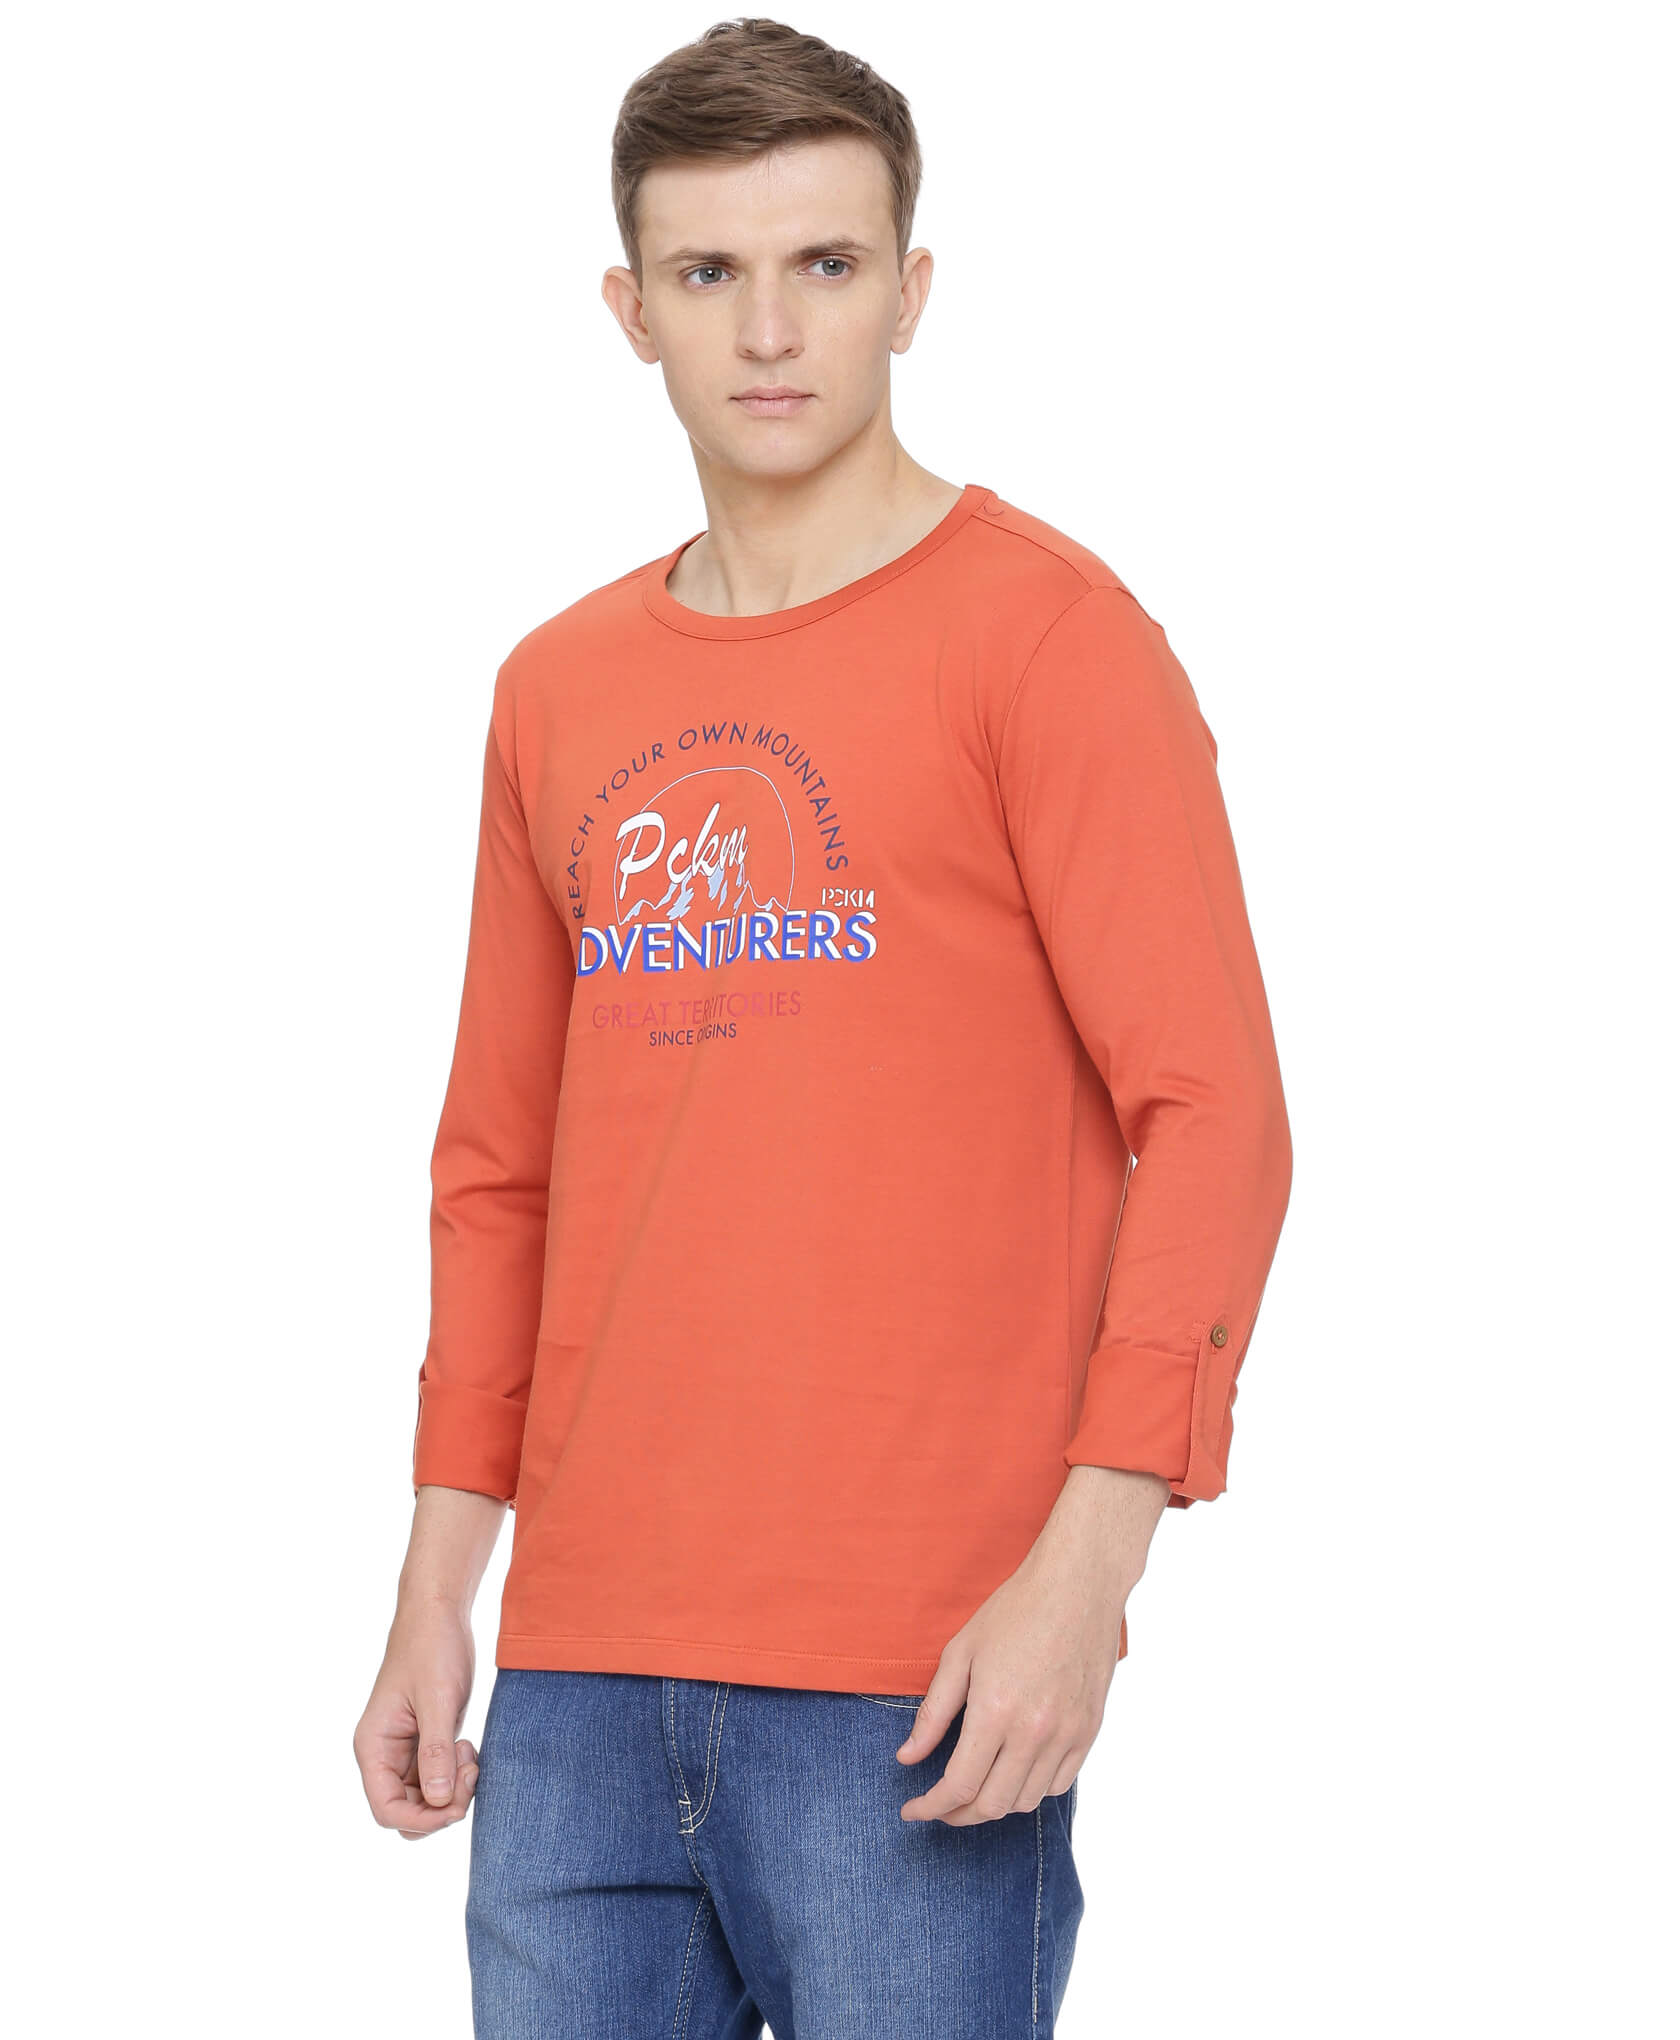 ATIVO PCKM Long Sleeves Tee with Roll Up Sleeves